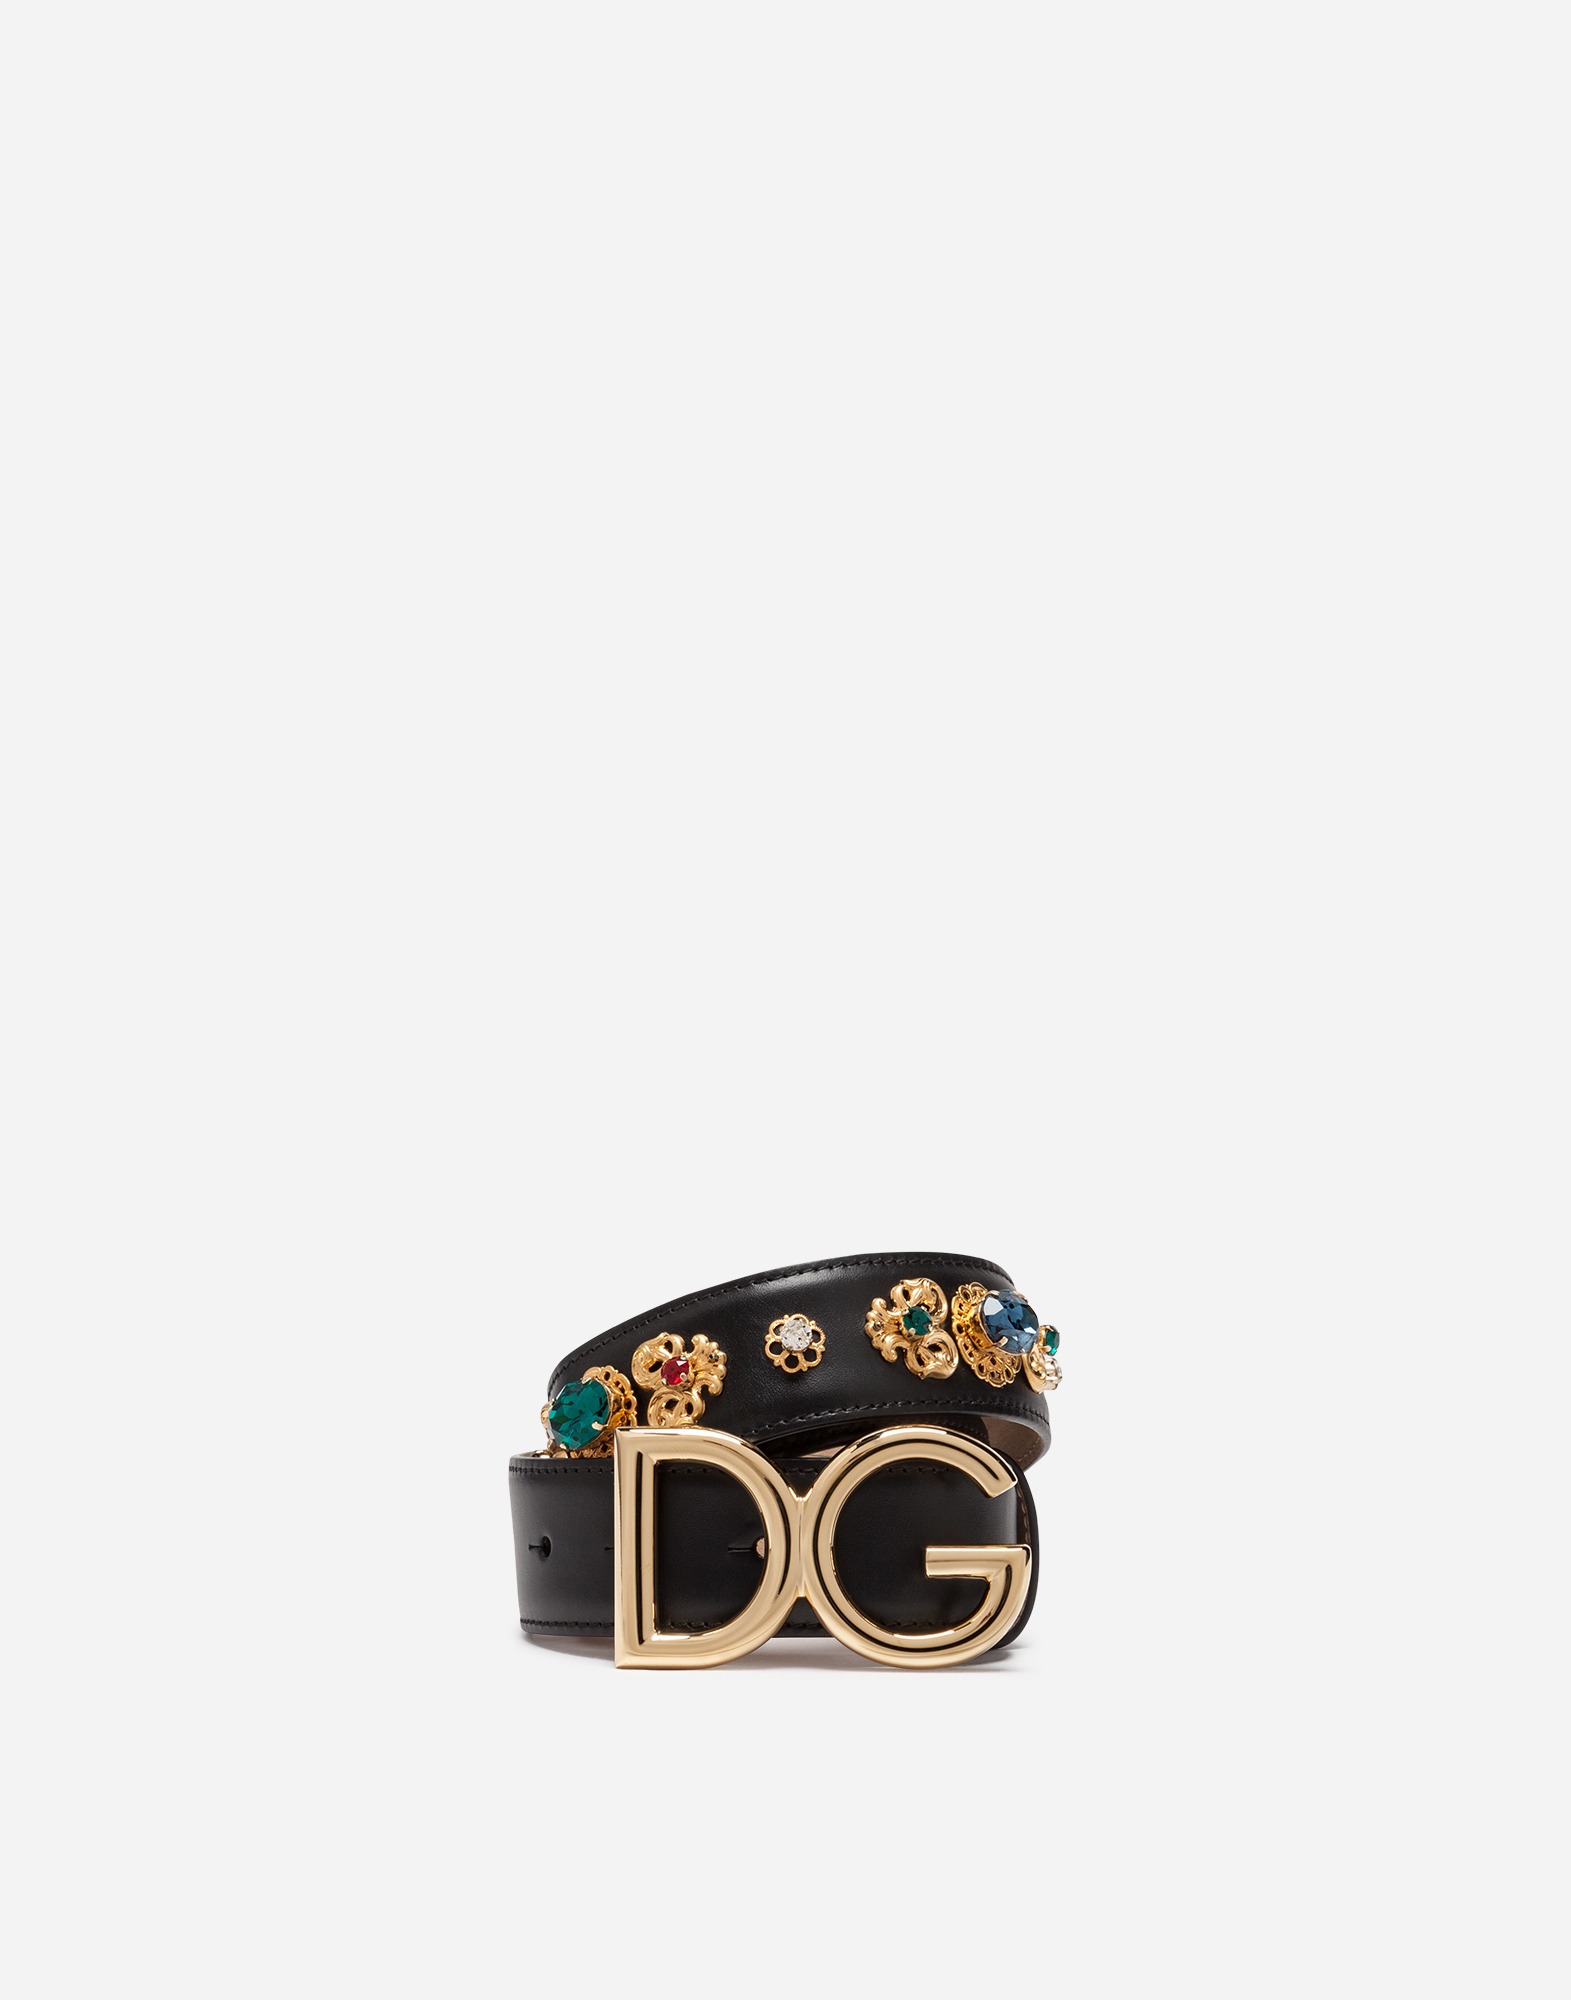 Dolce & Gabbana BELT IN LUX LEATHER WITH EMBROIDERIES